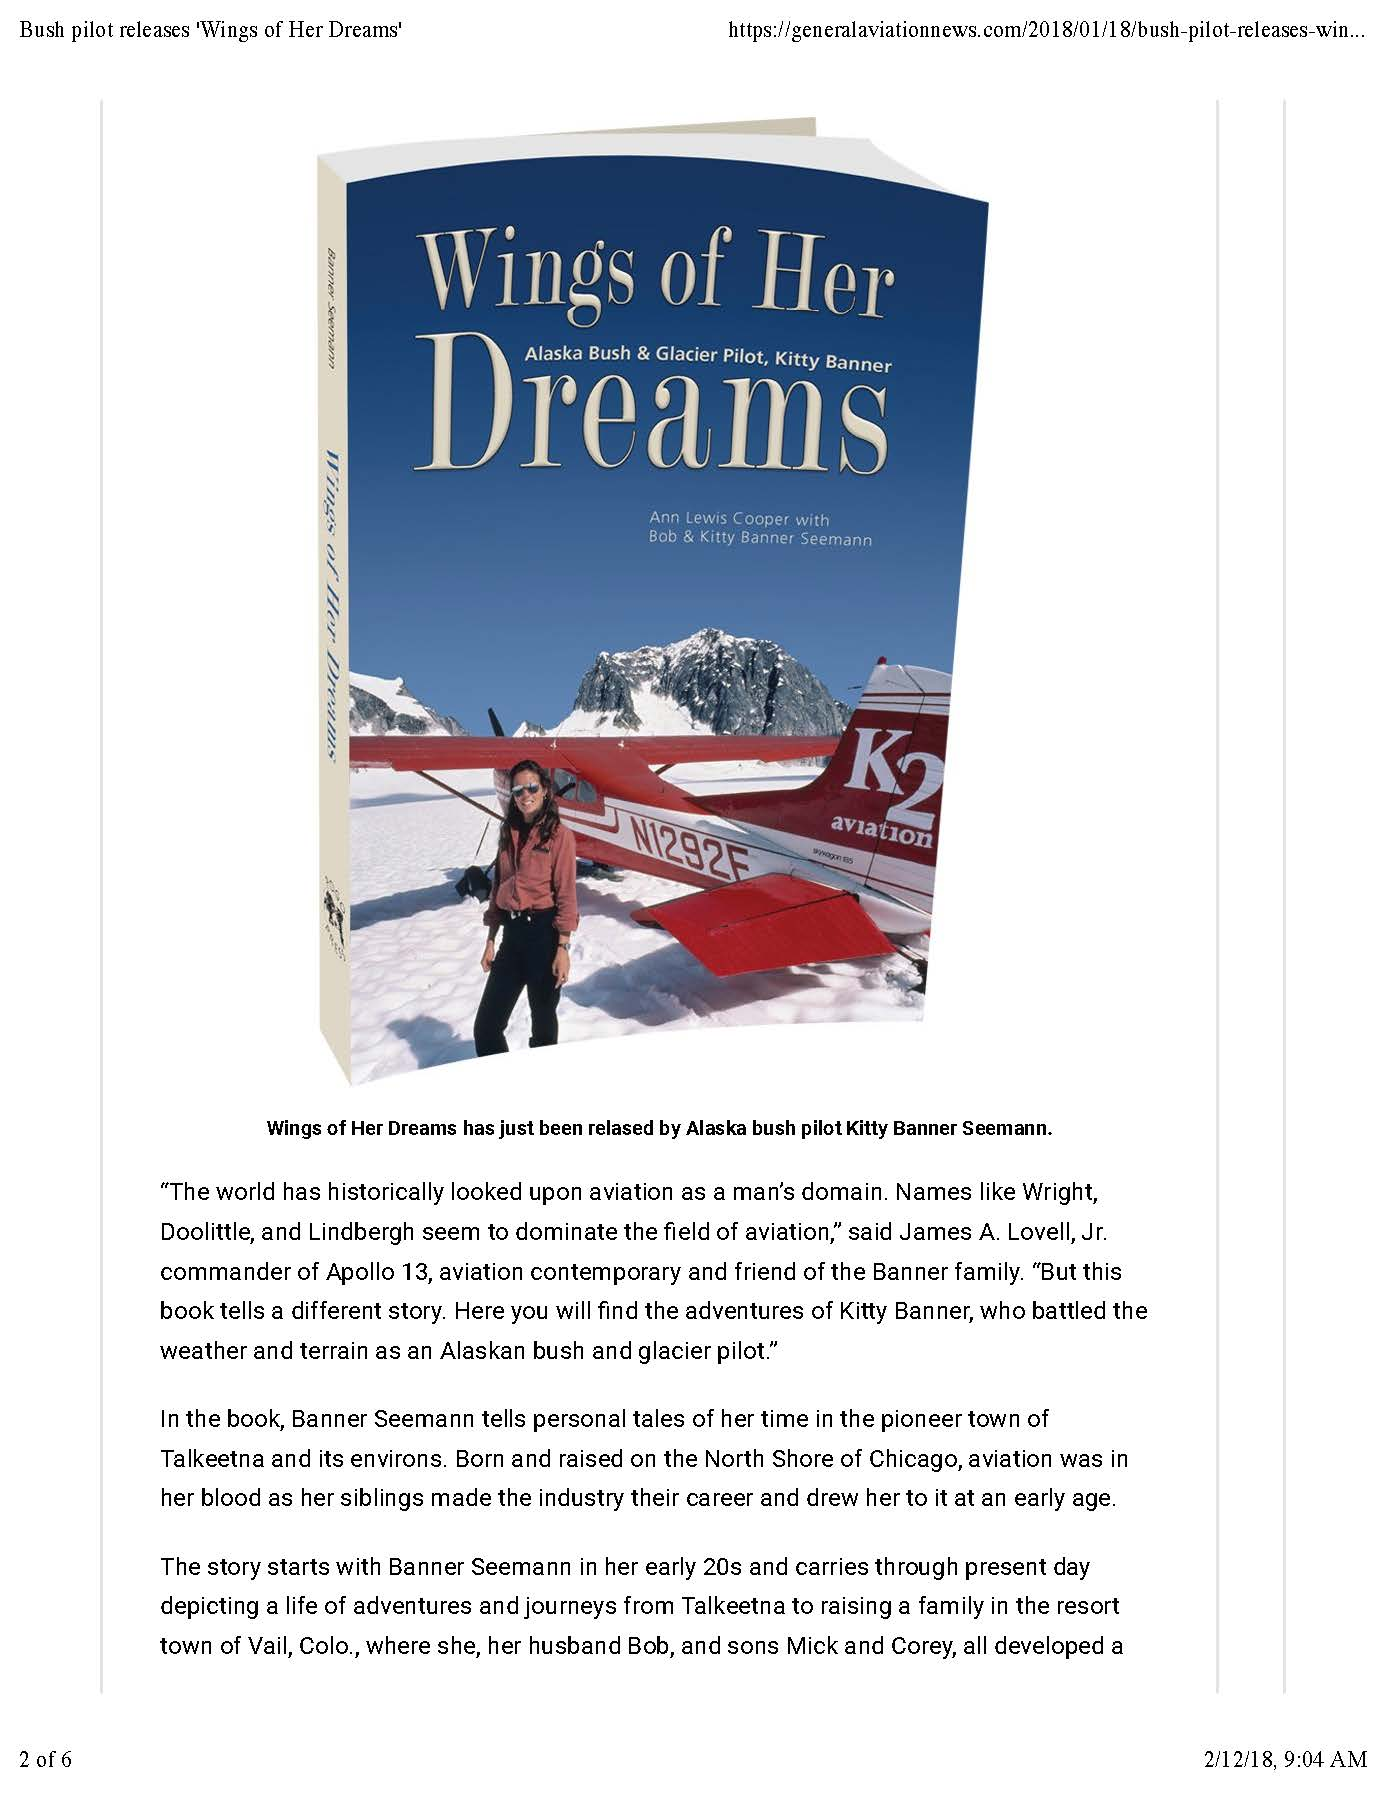 General Aviation News Bush pilot releases 'Wings of Her Dreams' 1.18.18_Page_2.jpg